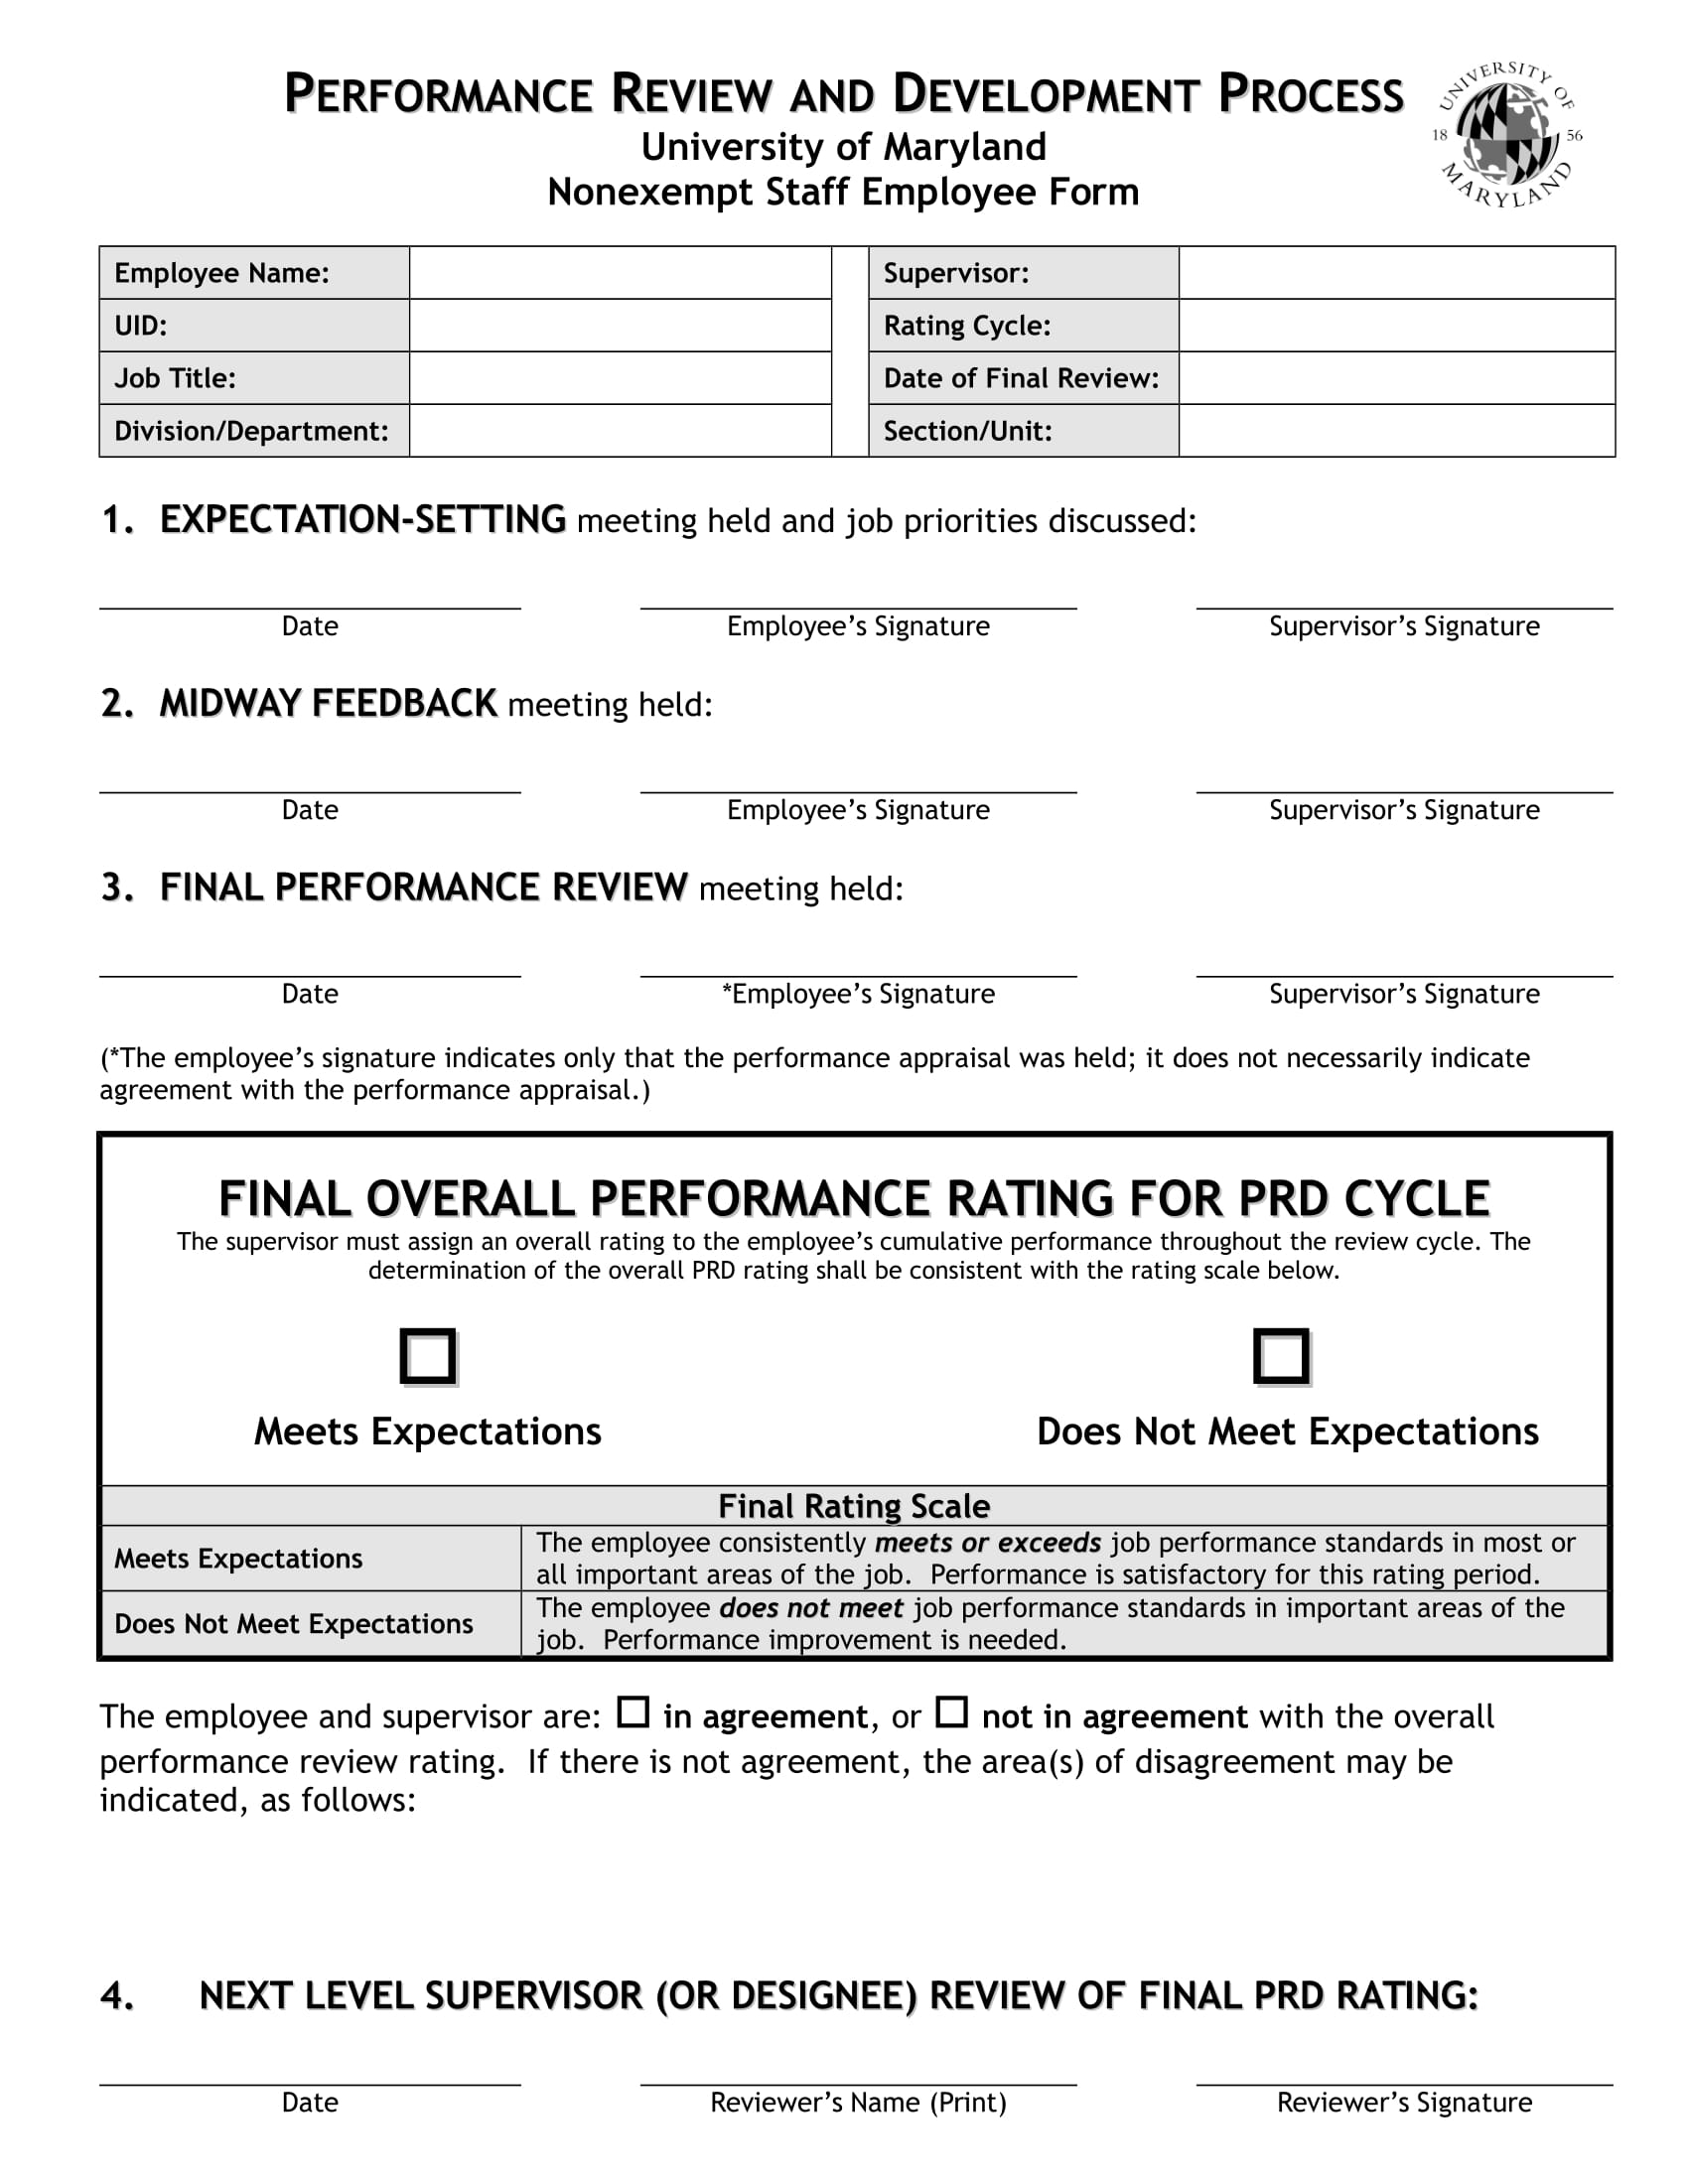 nonexempt staff employee review form in doc 1